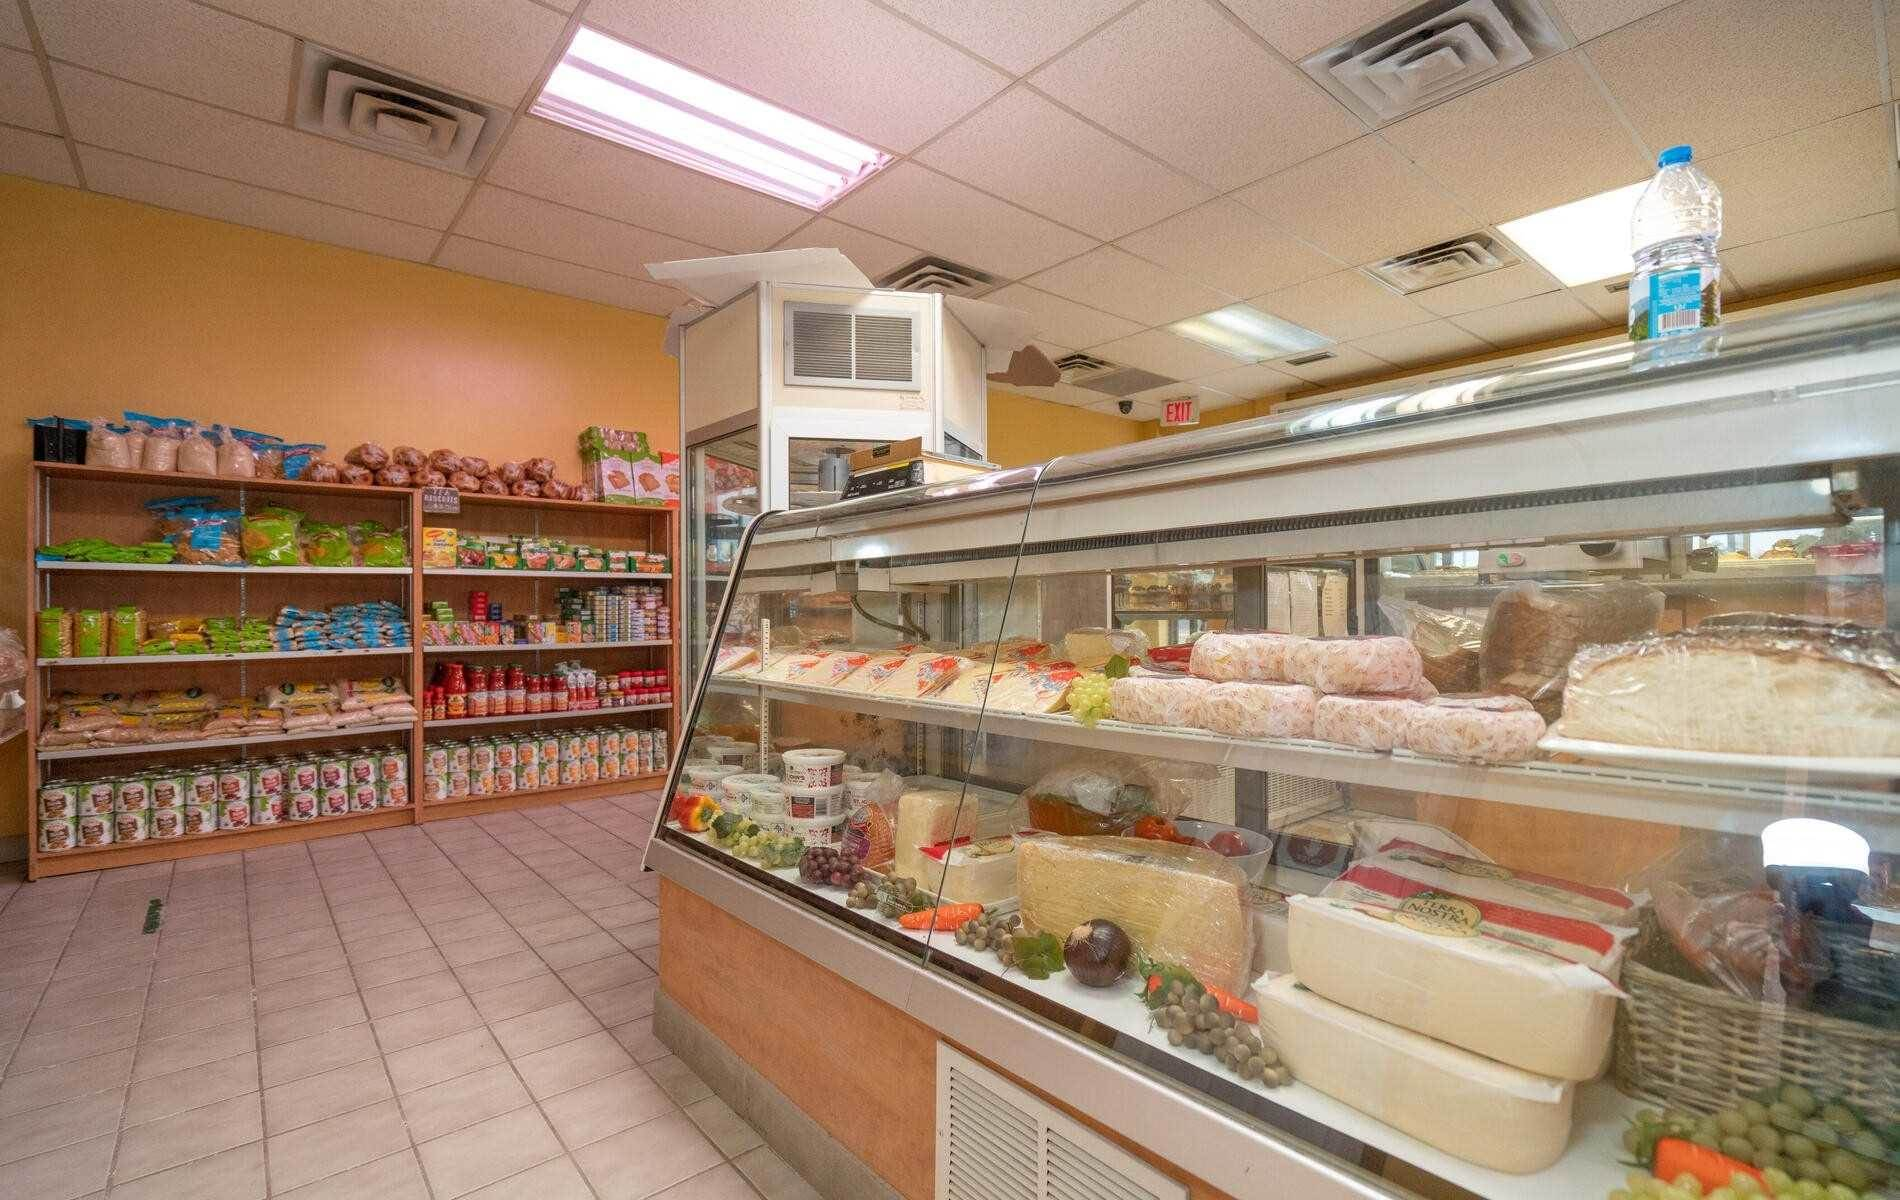 4 Mclaughlin Rd S in Brampton - Commercial For Sale : MLS# w5140894 Photo 4